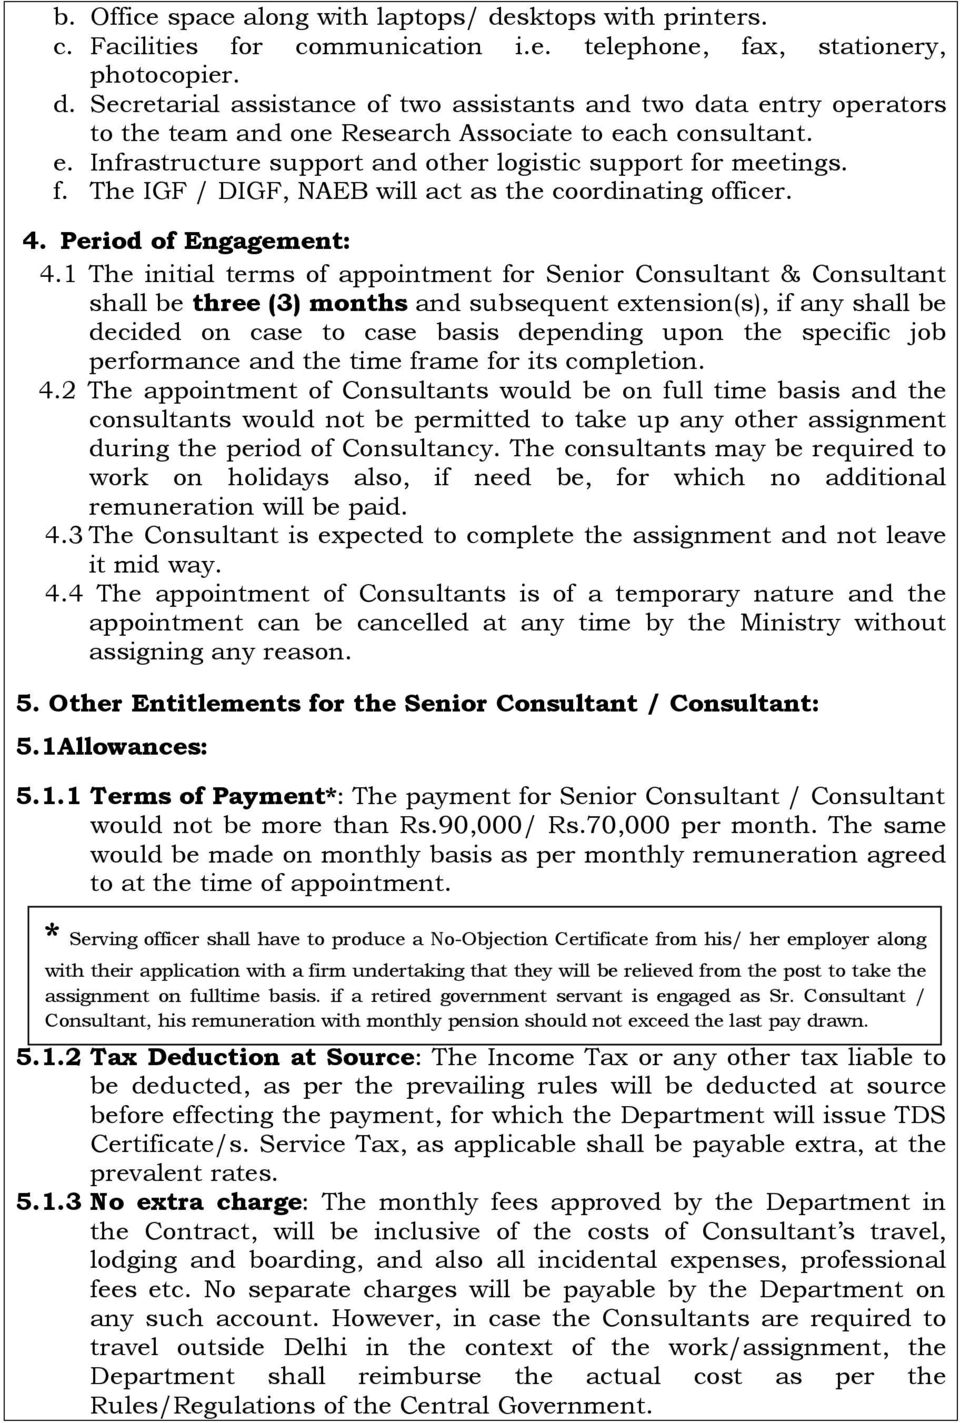 1 The initial terms of appointment for Senior Consultant & Consultant shall be three (3) months and subsequent extension(s), if any shall be decided on case to case basis depending upon the specific